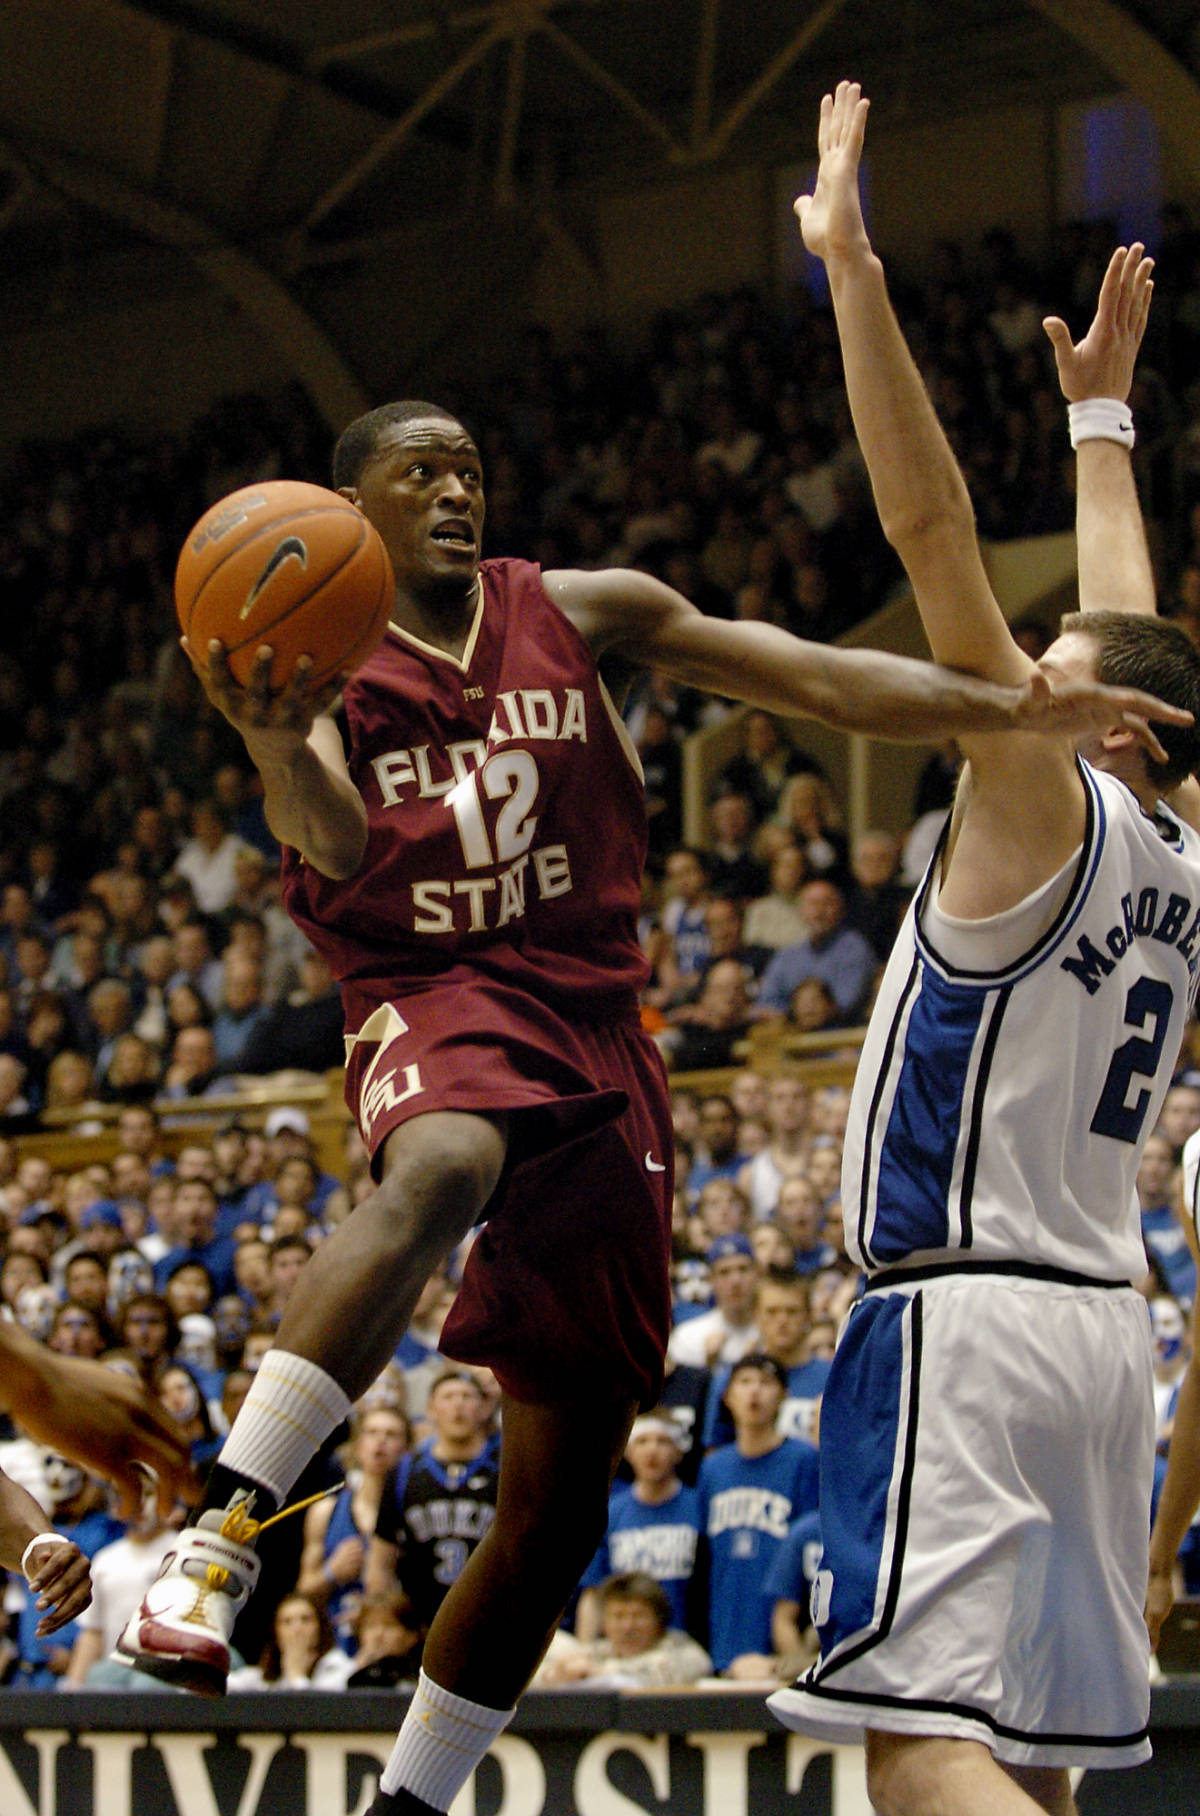 Florida State's Al Thorton (12) drives toward the basket over Duke's Josh McRoberts (2) in the second half of a basketball game in Durham, N.C., on Sunday, Feb. 4, 2007. Thornton led his team with 21 points. Florida State upset Duke, 68-67. (AP Photo/Sara D. Davis)